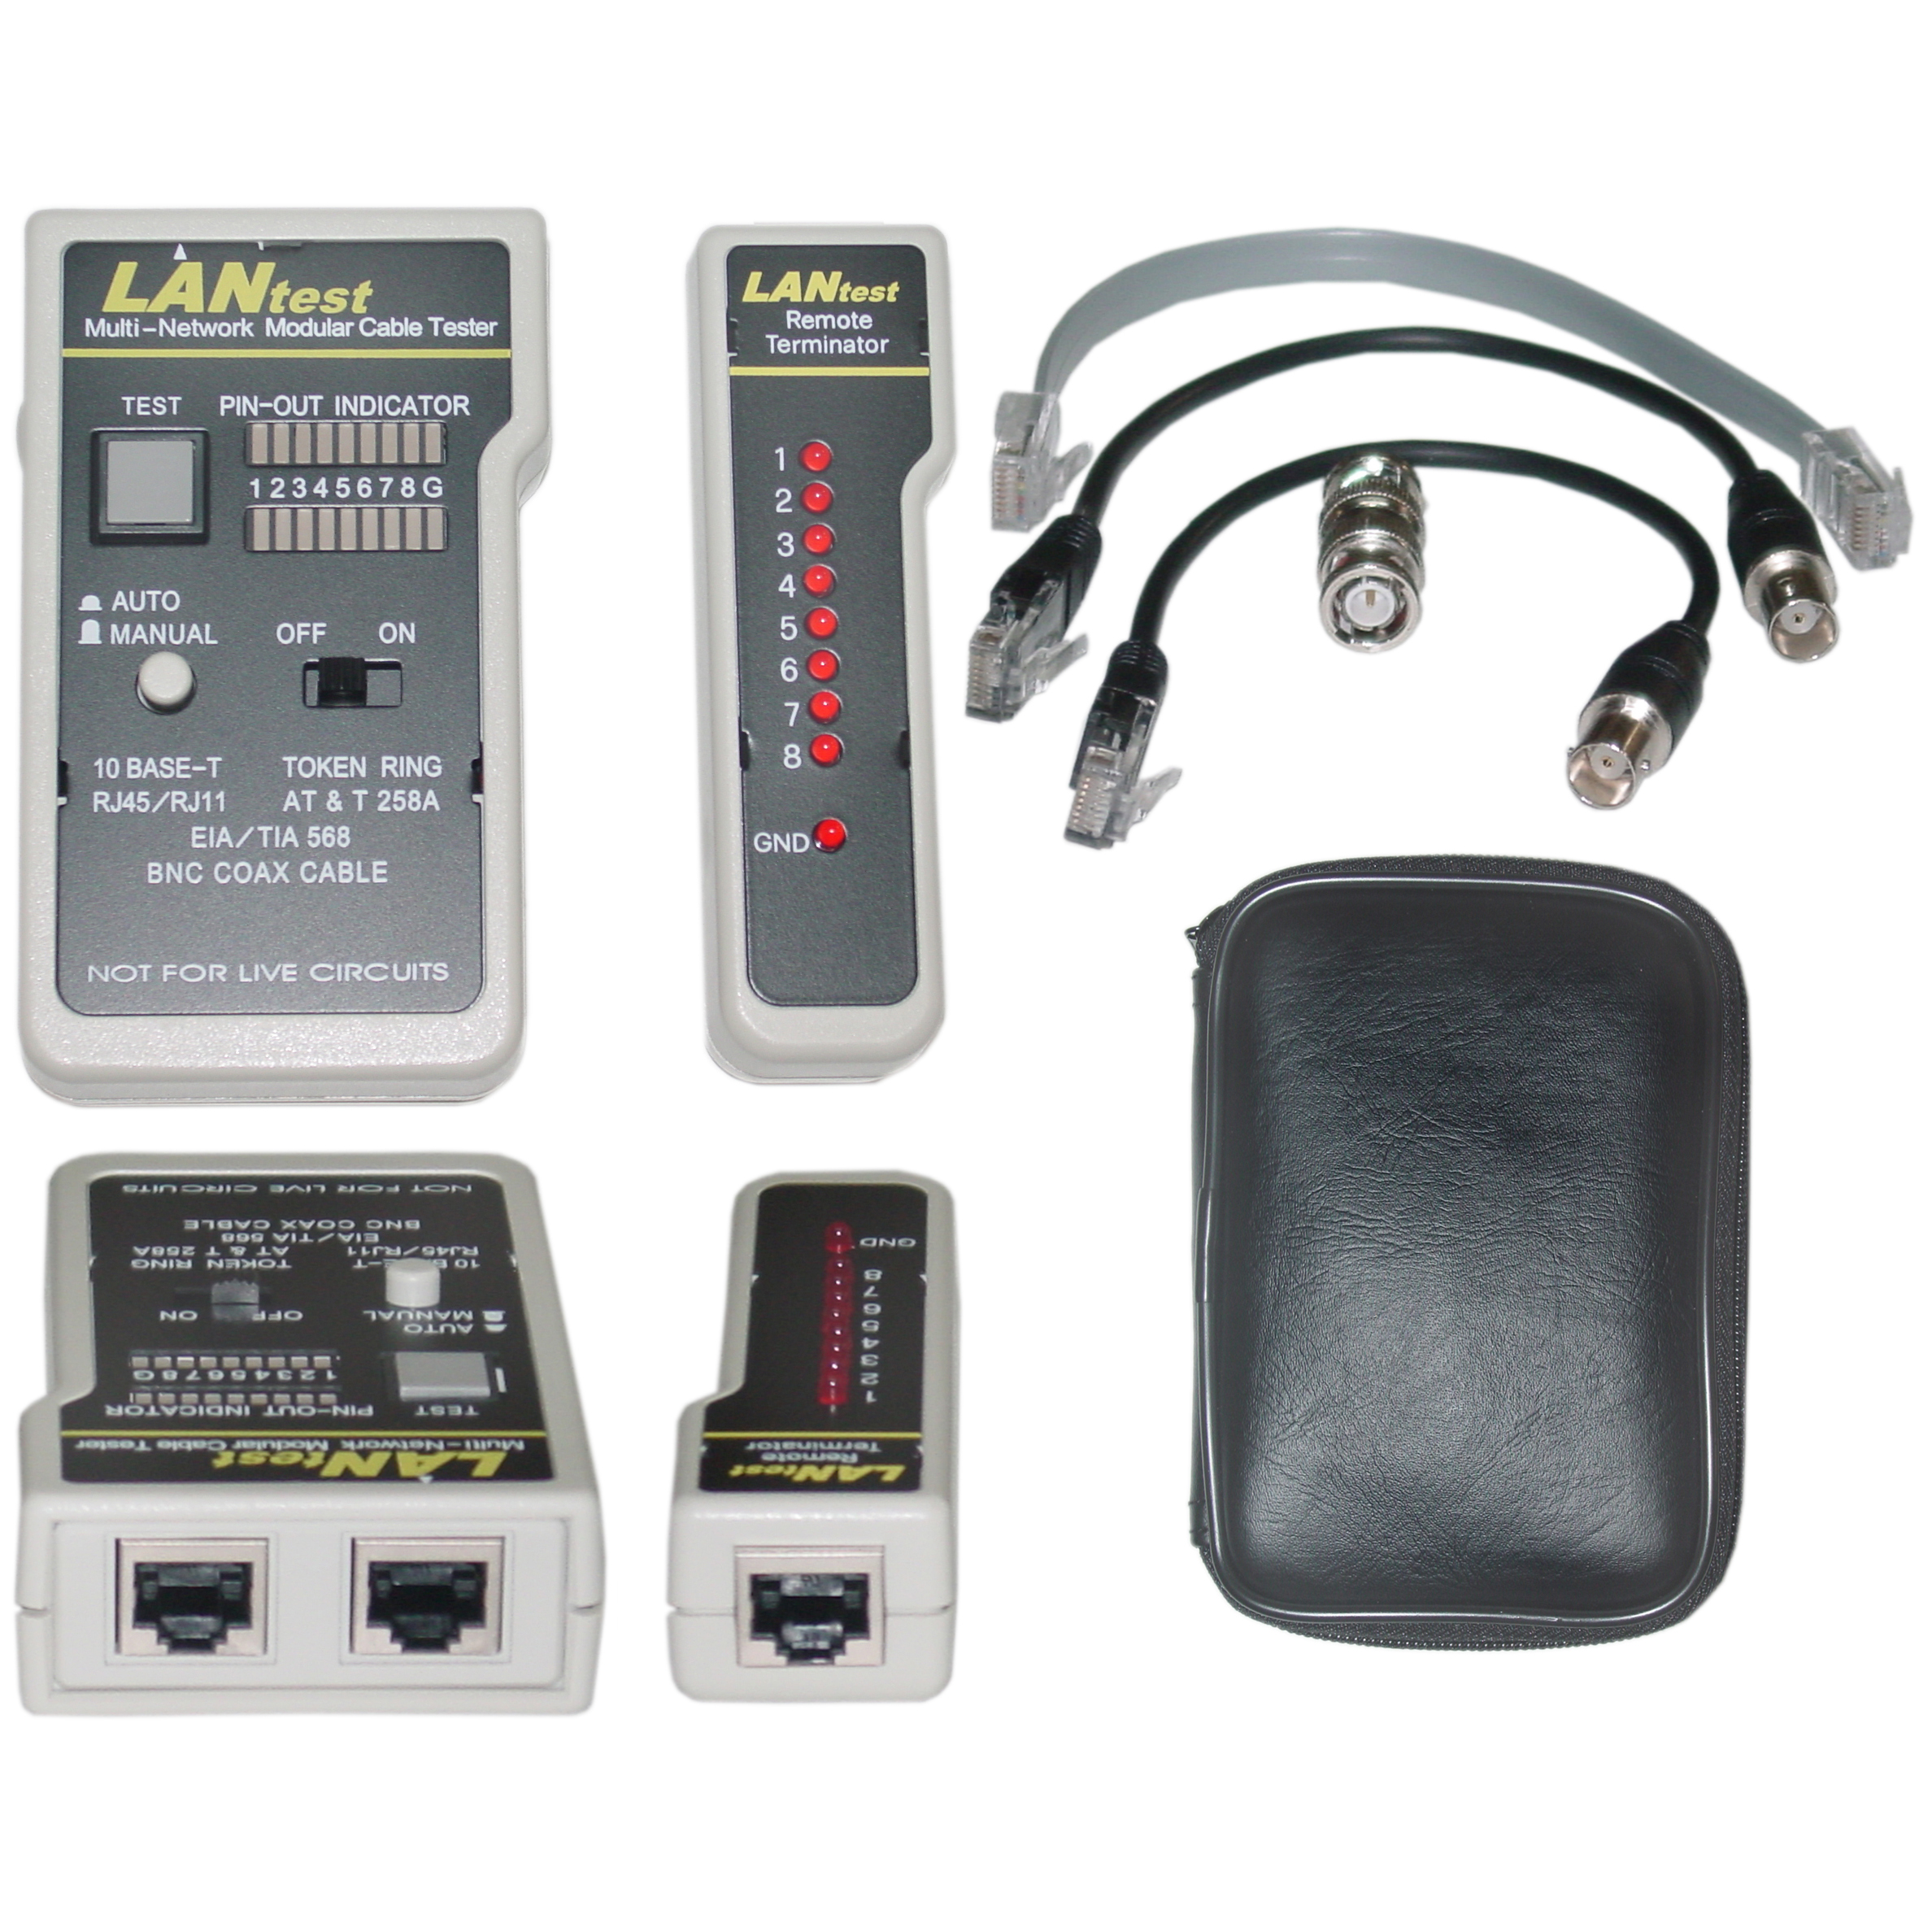 Network Cable Tester : Lan tester network cable pin configuration wire map